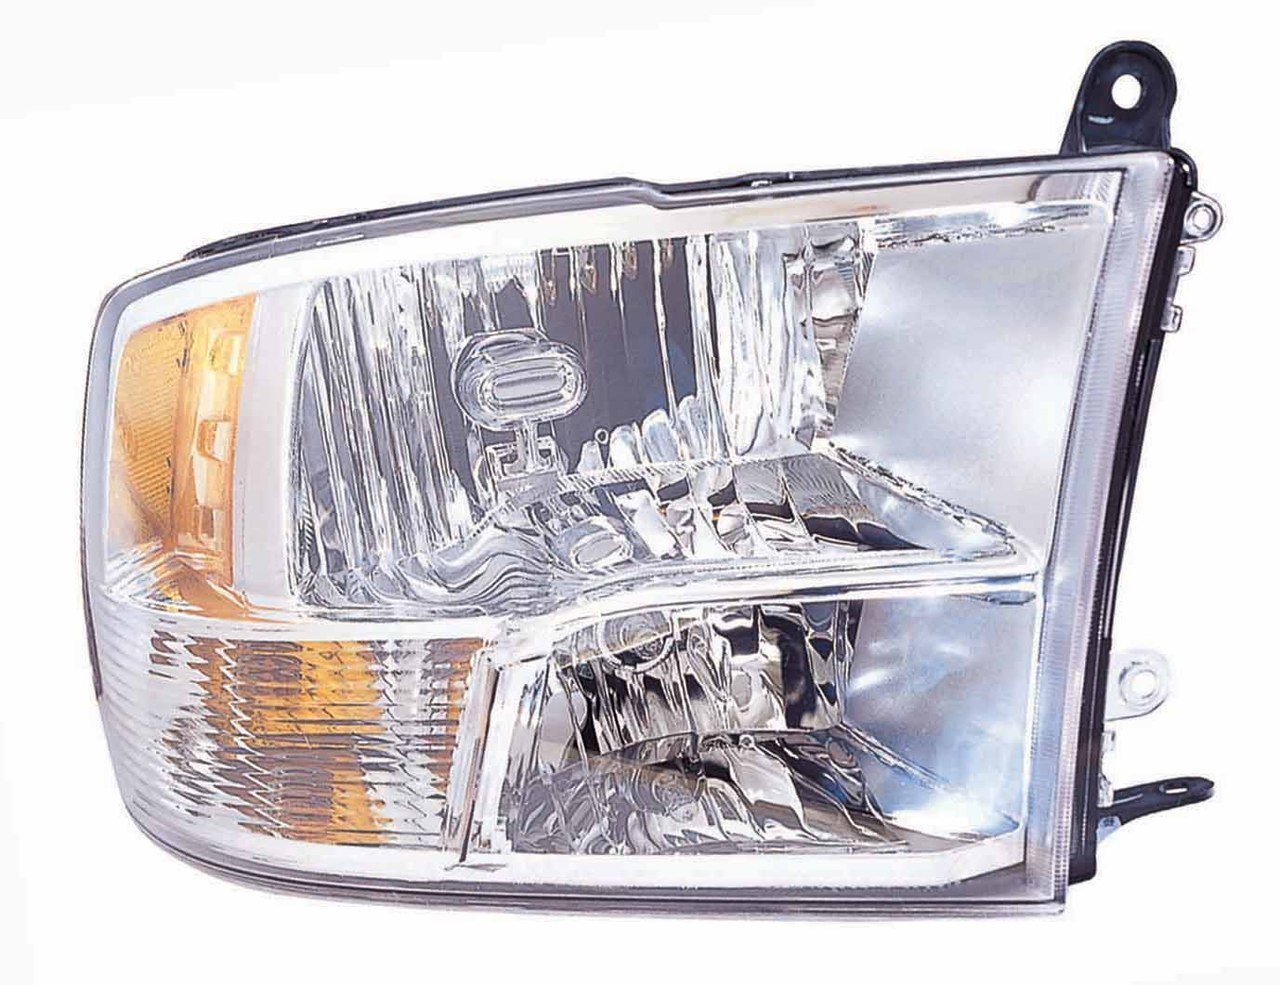 Dodge RAM 1500/2500/3500 2010 2011 2012 2013 2014 2015 right passenger headlight (Quad Lamp)